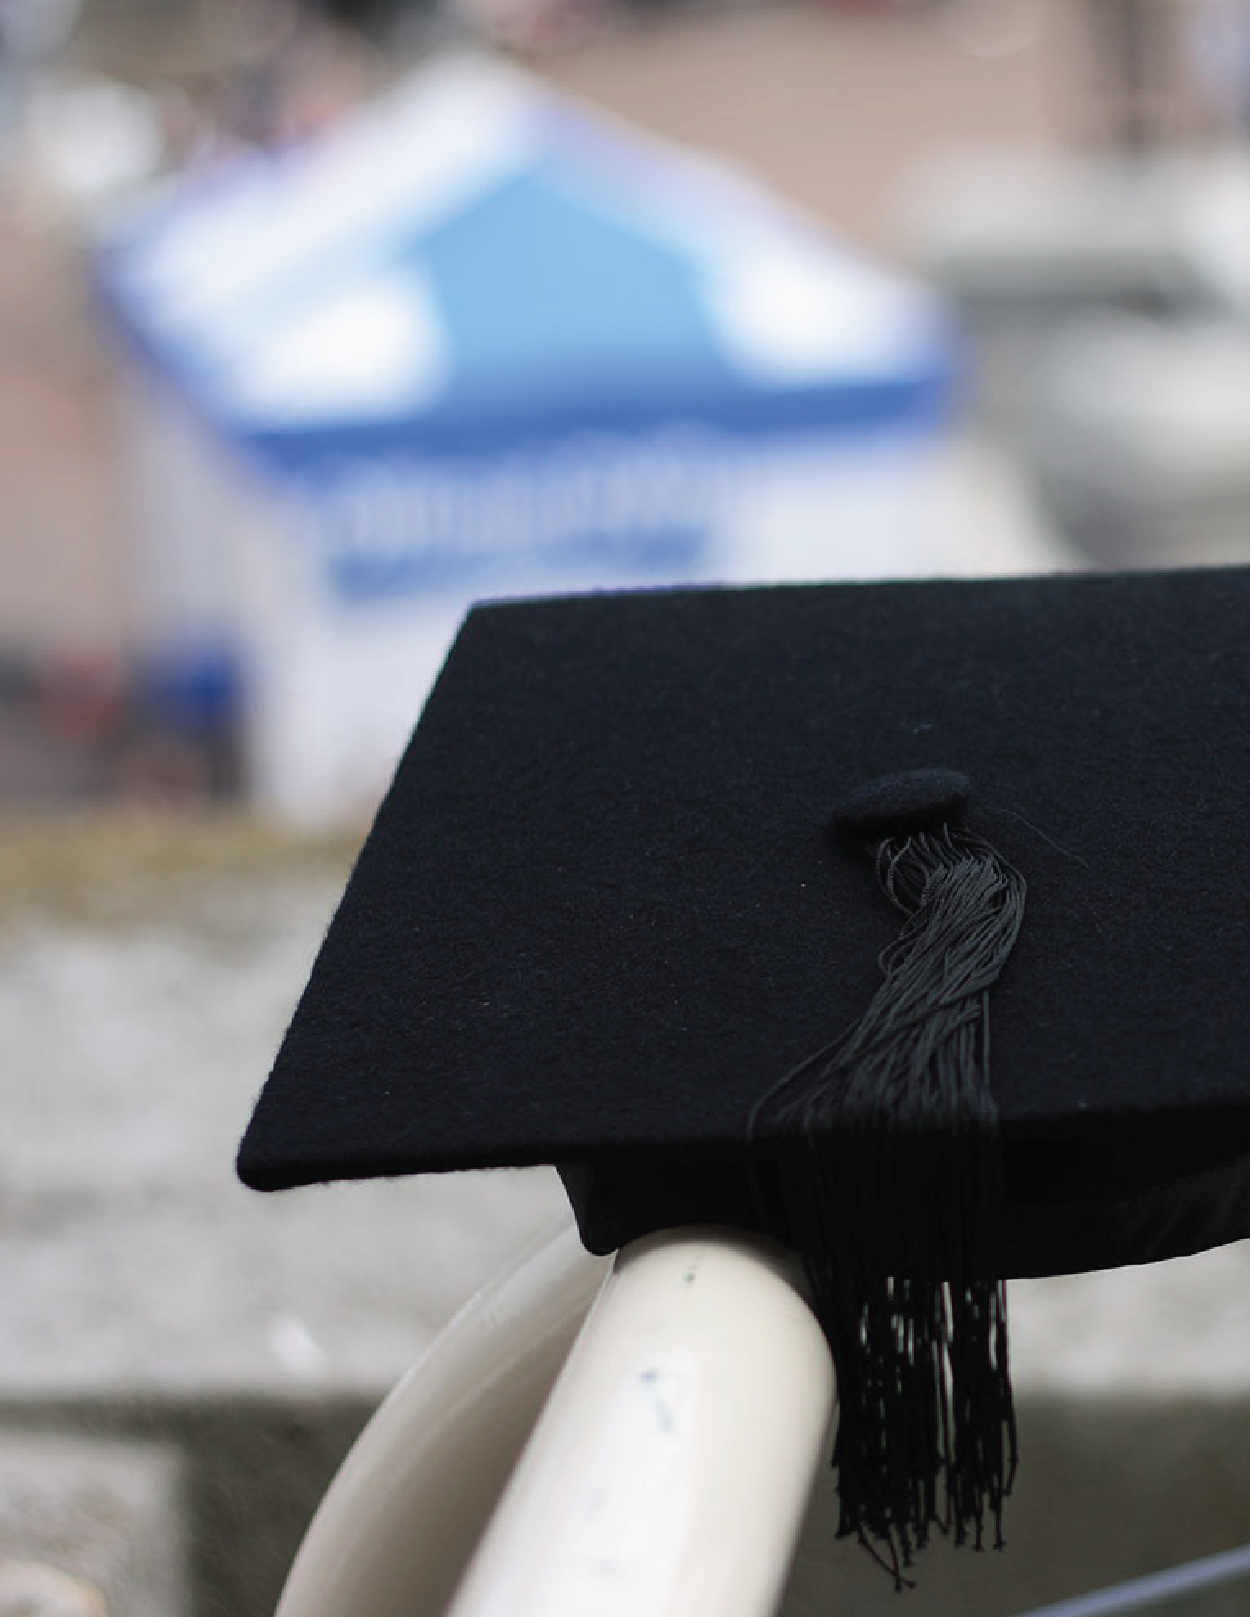 A Call for Re-Examining New York's Tuition Assistance Program